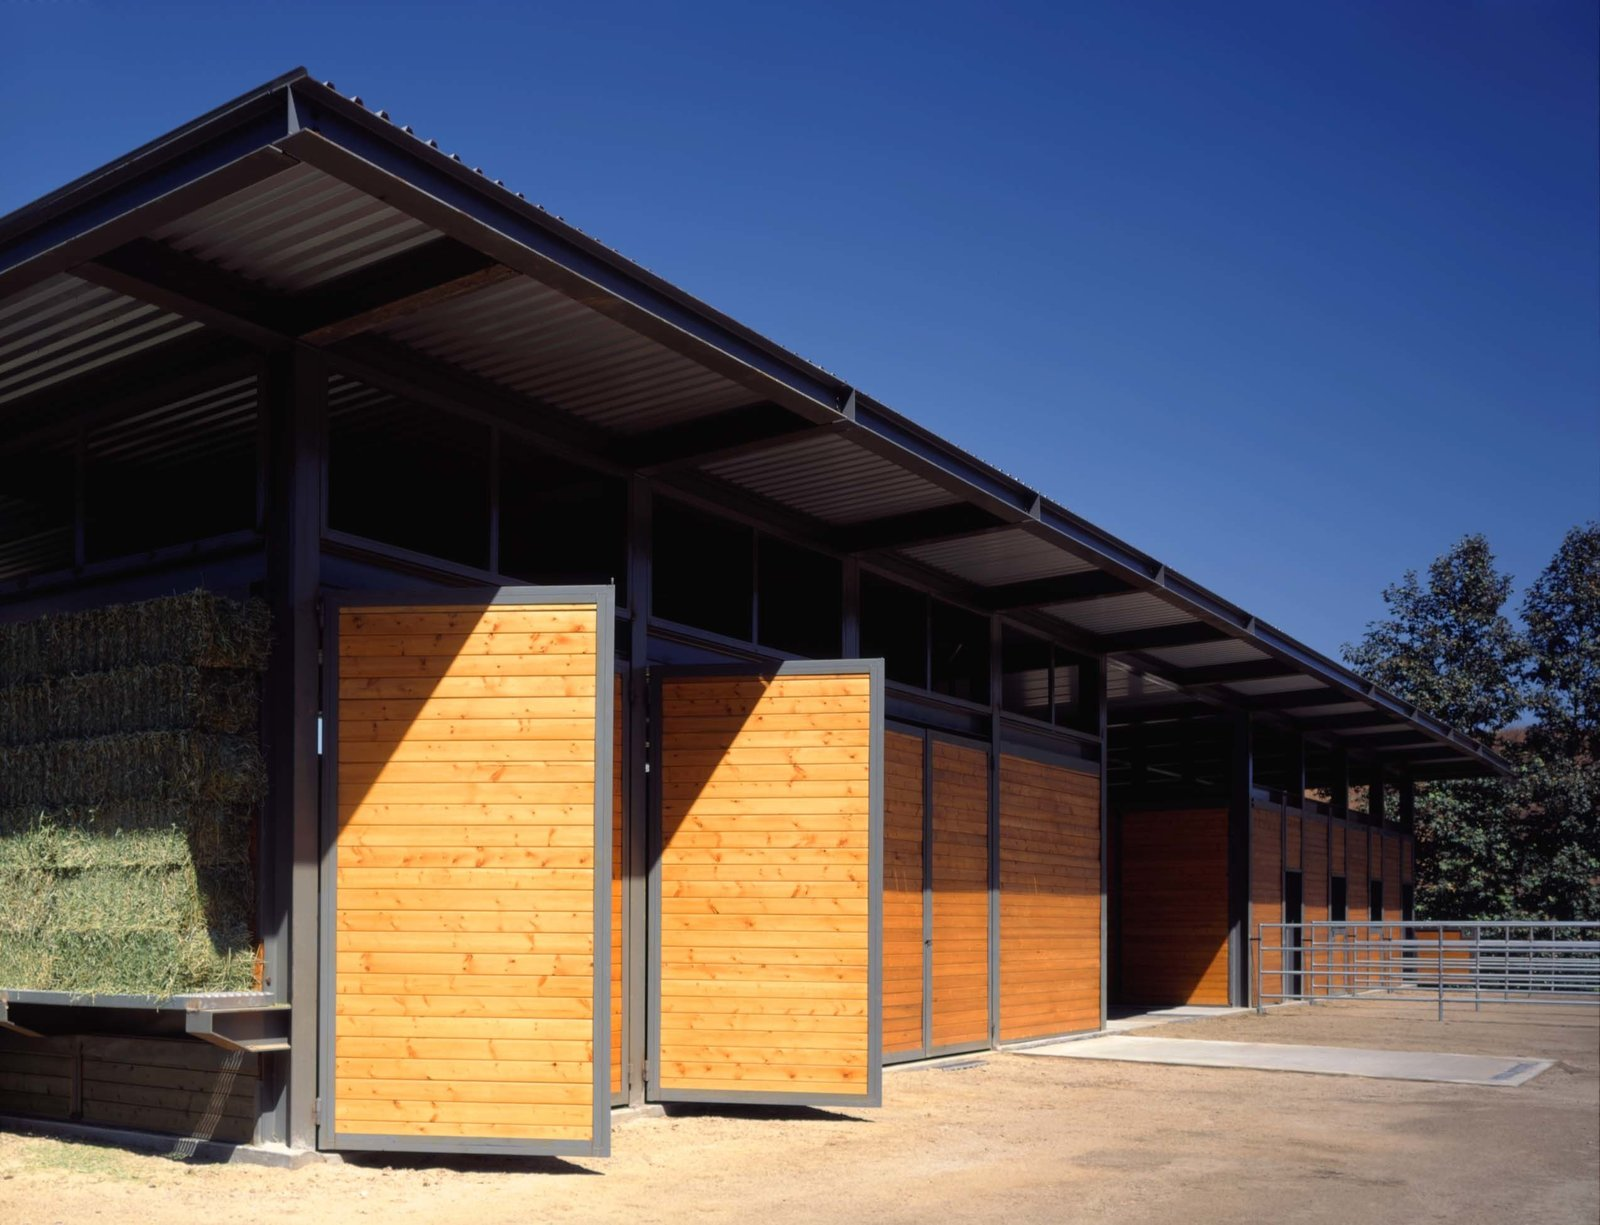 The barn itself can house four horses, tractors, tack room, and other farm equipment needed for maintaining the forty acre lemon grove that surrounds it.  Somis Hay Barn by Studio Pali Fekete architects